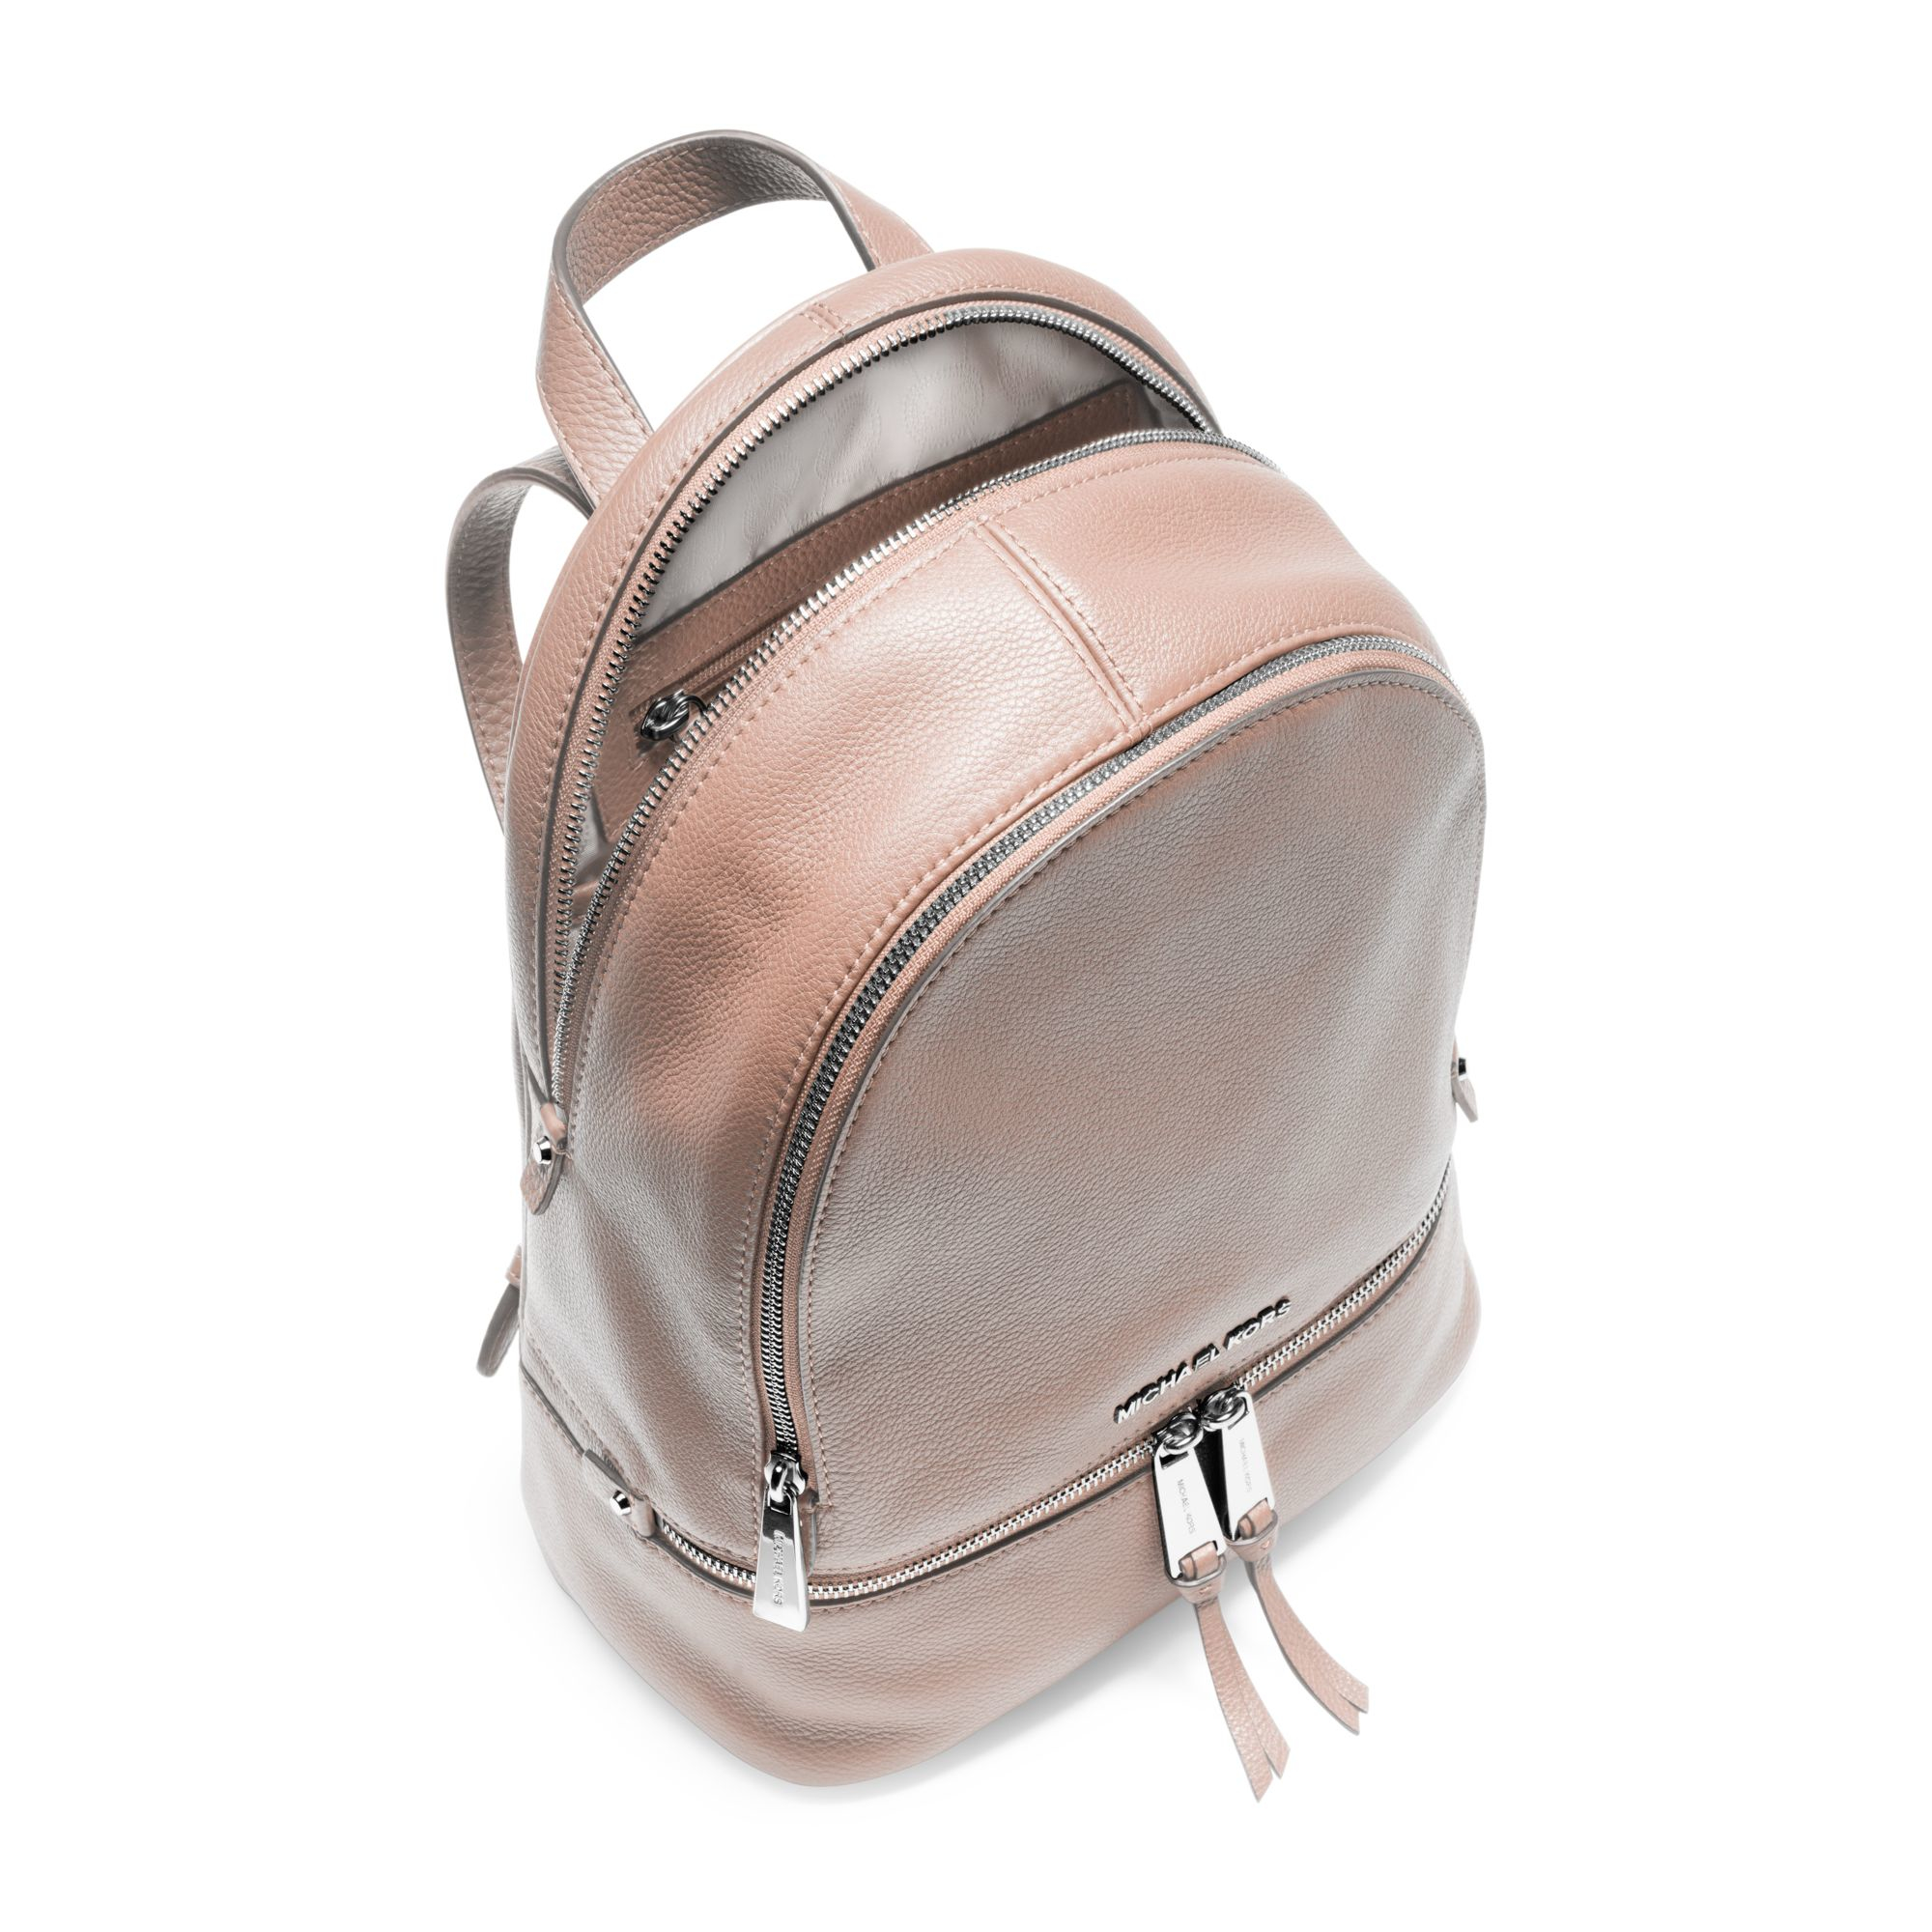 a9e45a2512e1 ... netherlands michael kors backpack michael kors small rhea zip studded  backpack michael kors rhea extra small